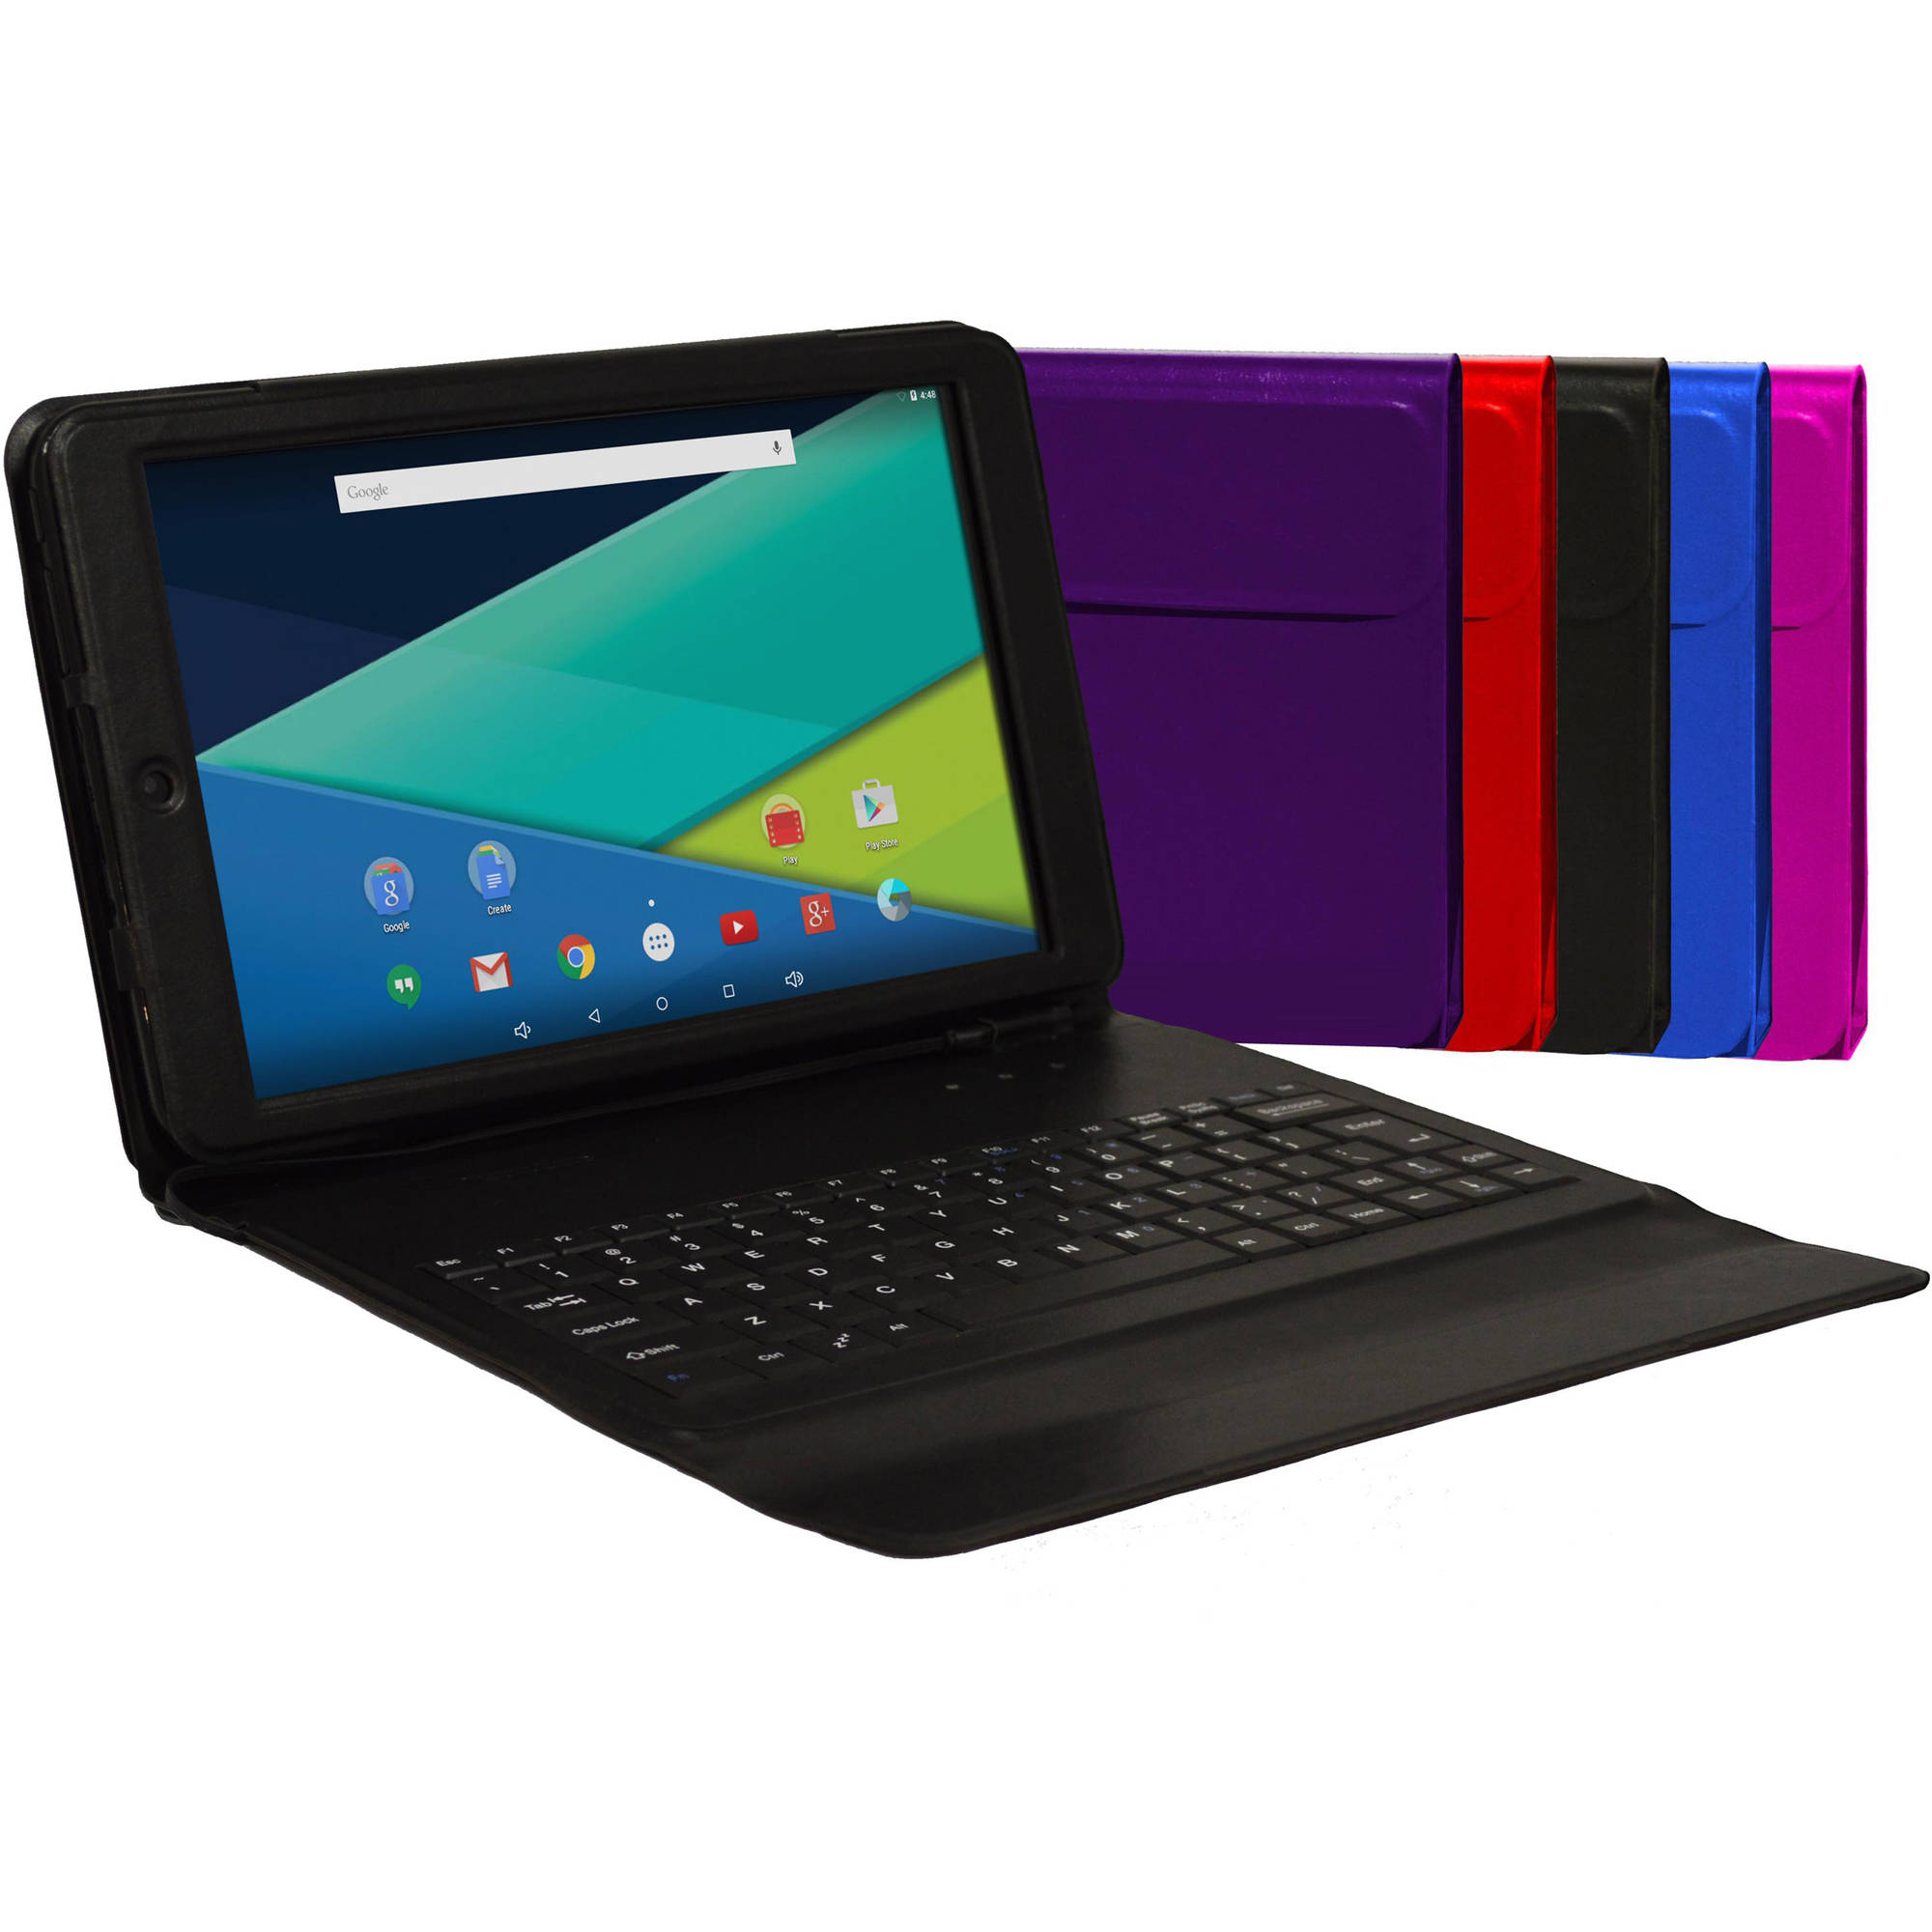 "Visual Land Prestige Elite 10.1"" Tablet 16GB Quad Core Android 5.0 Keyboard Case"